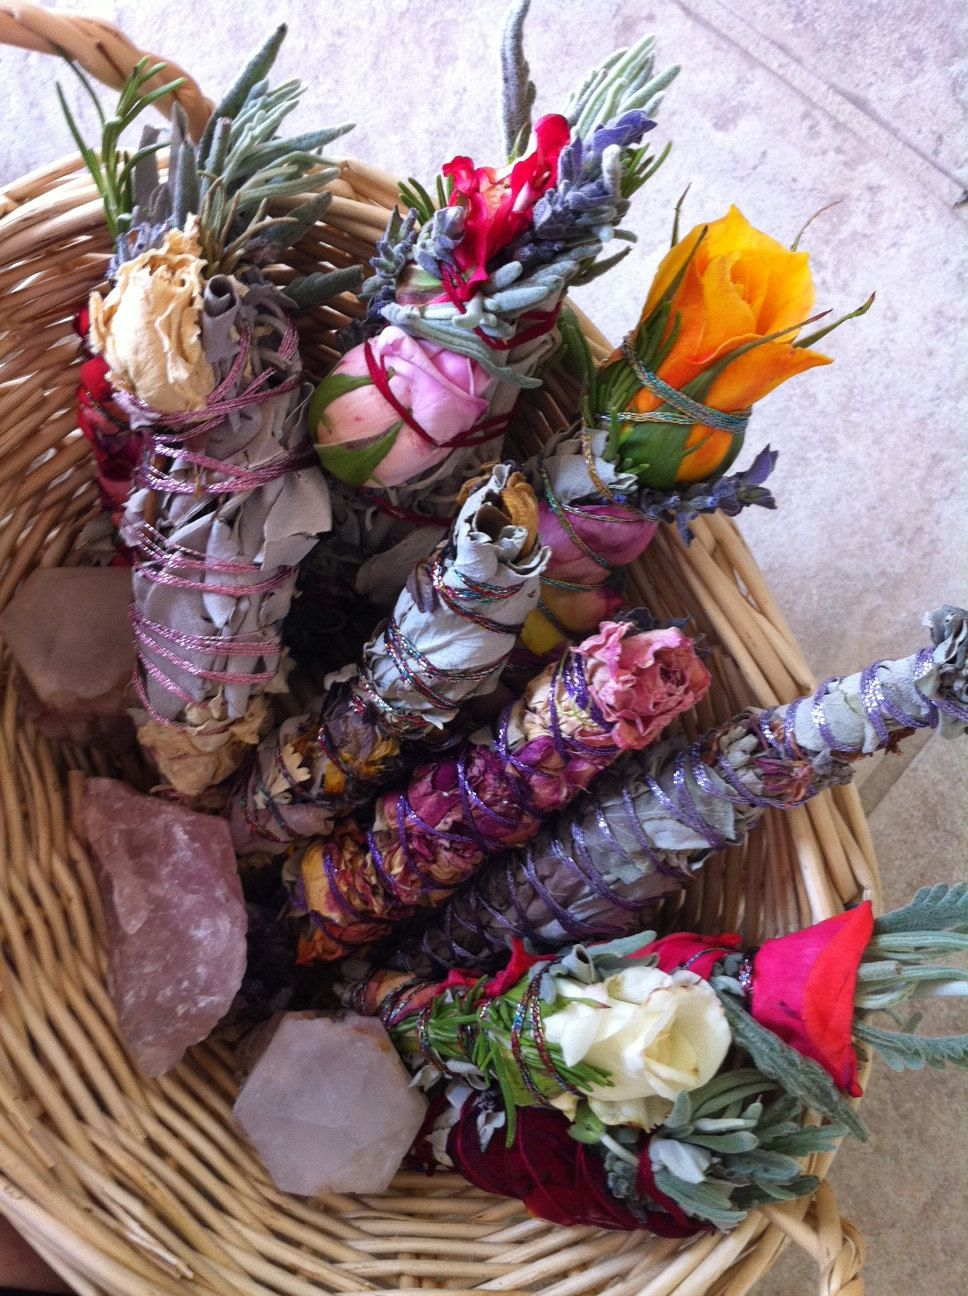 how to make sage bundles with flowers